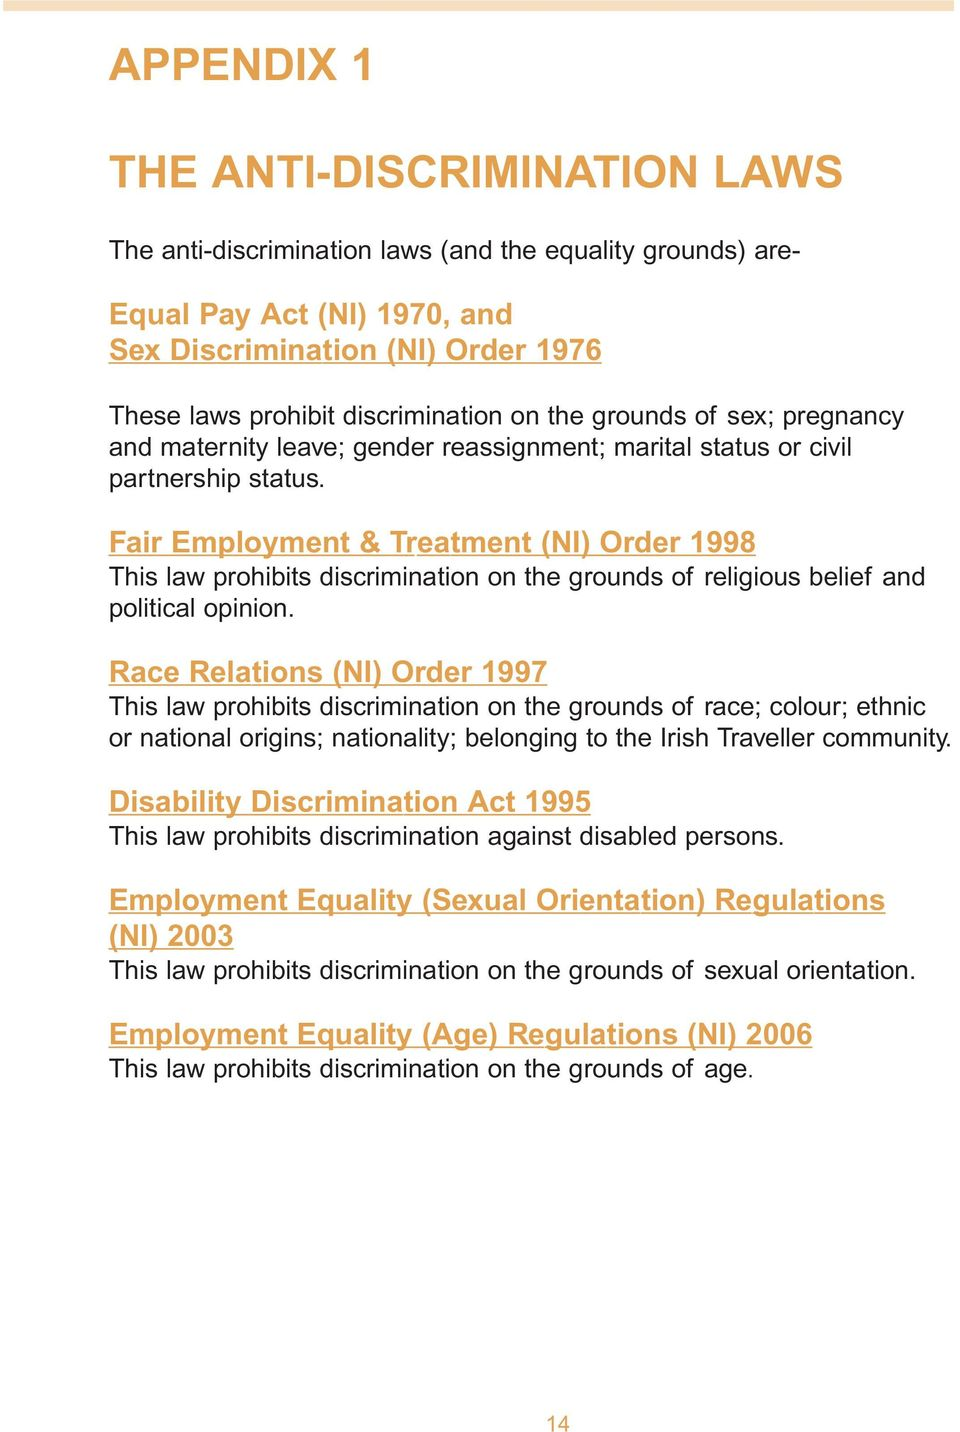 Fair Employment & Treatment (NI) Order 1998 This law prohibits discrimination on the grounds of religious belief and political opinion.